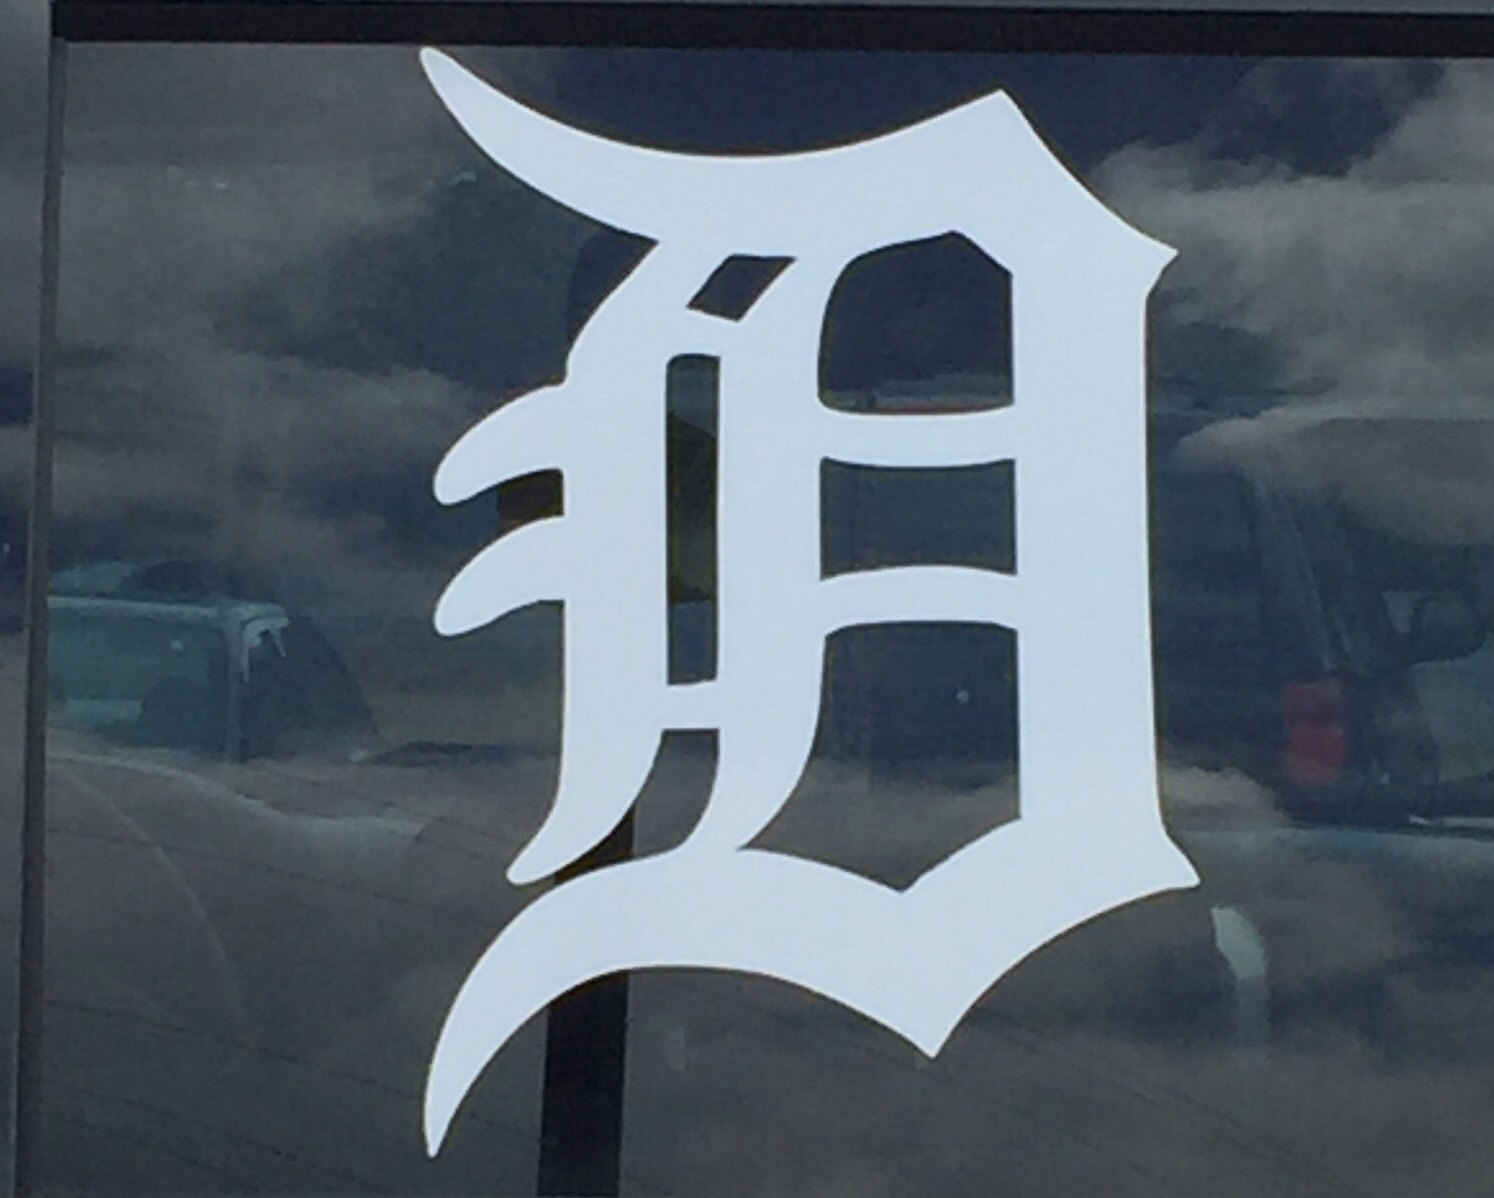 Detroit tigers clip art free, Free Download Clipart and Images.